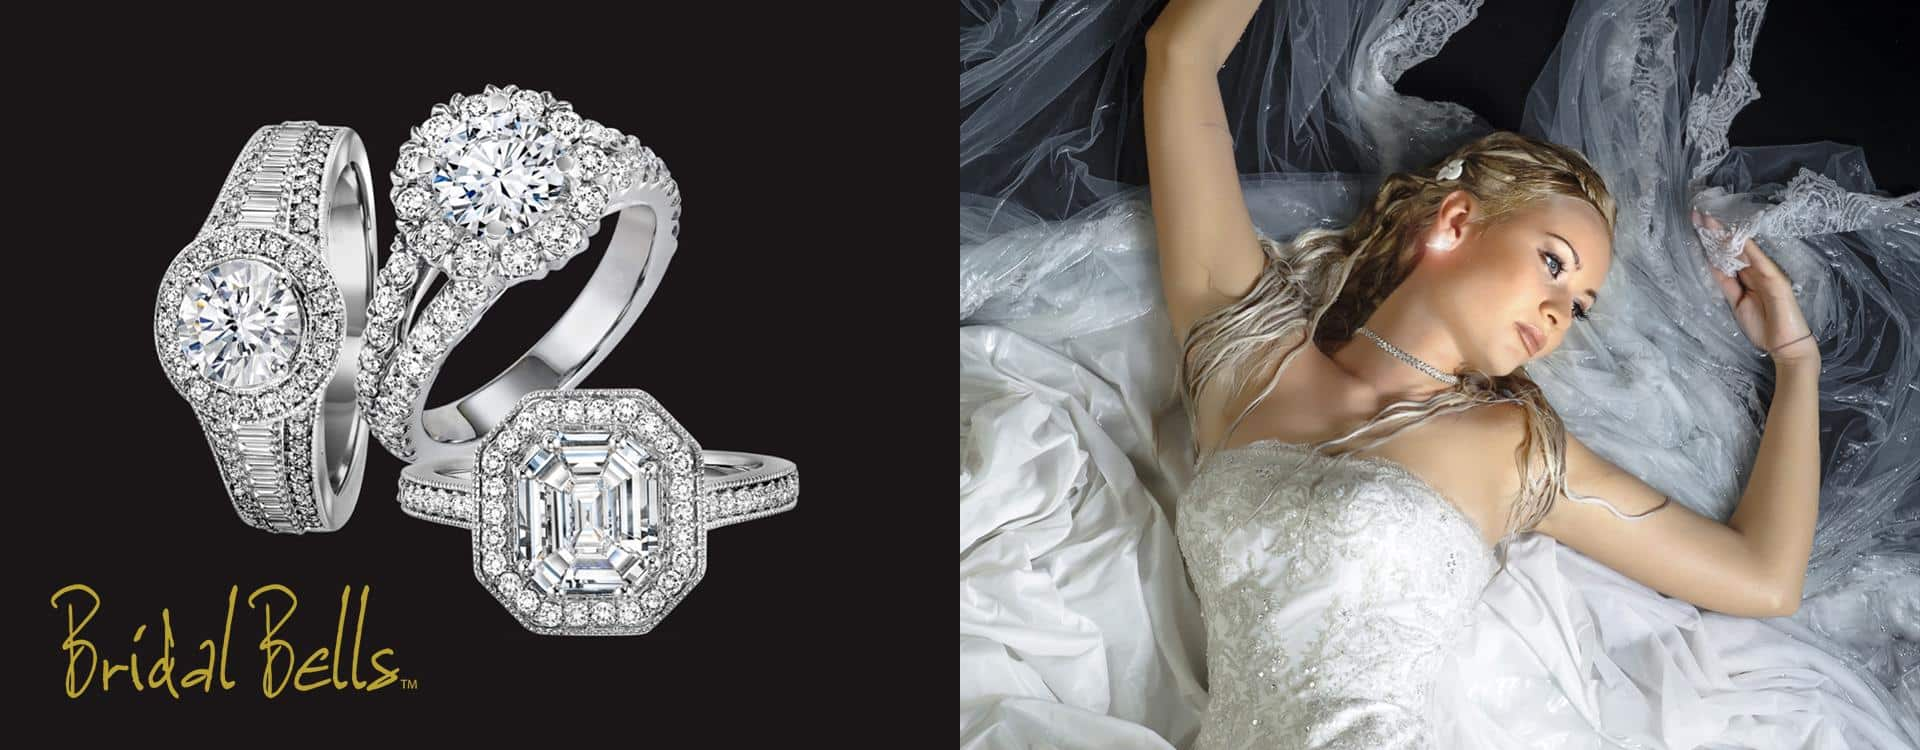 famous rancic blog ring cut celebrity giuliana designer engagement rings cushion ritani